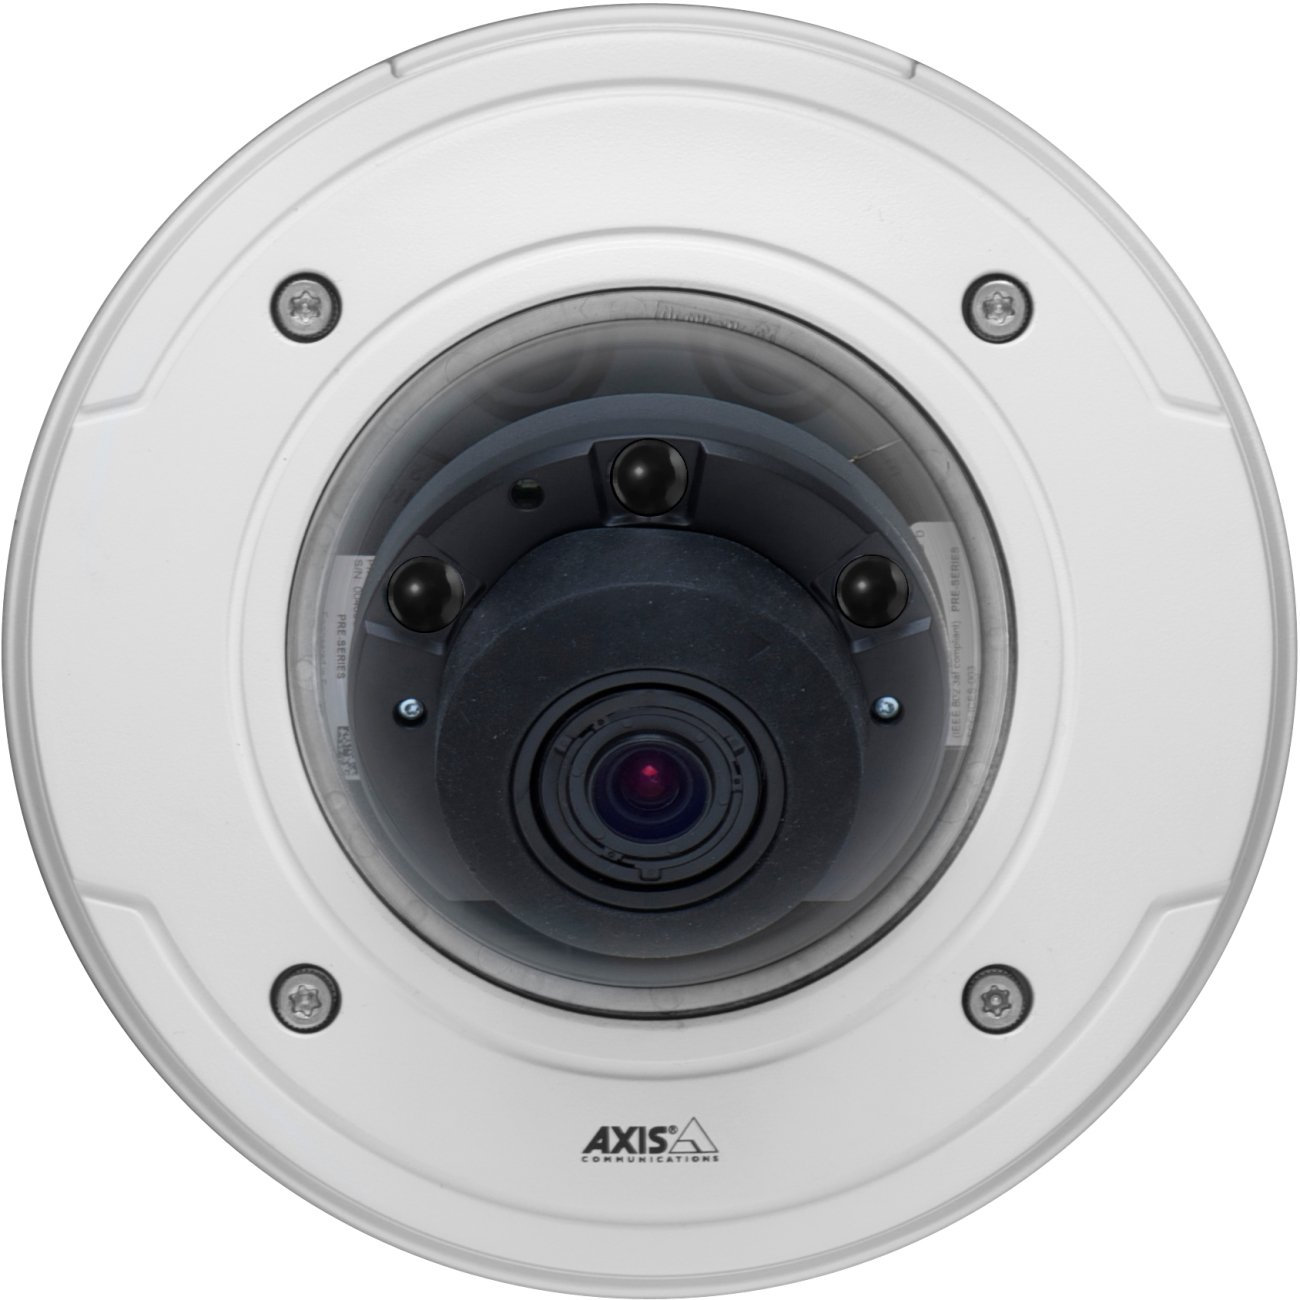 AXIS P3364-LV NETWORK CAMERA 64BIT DRIVER